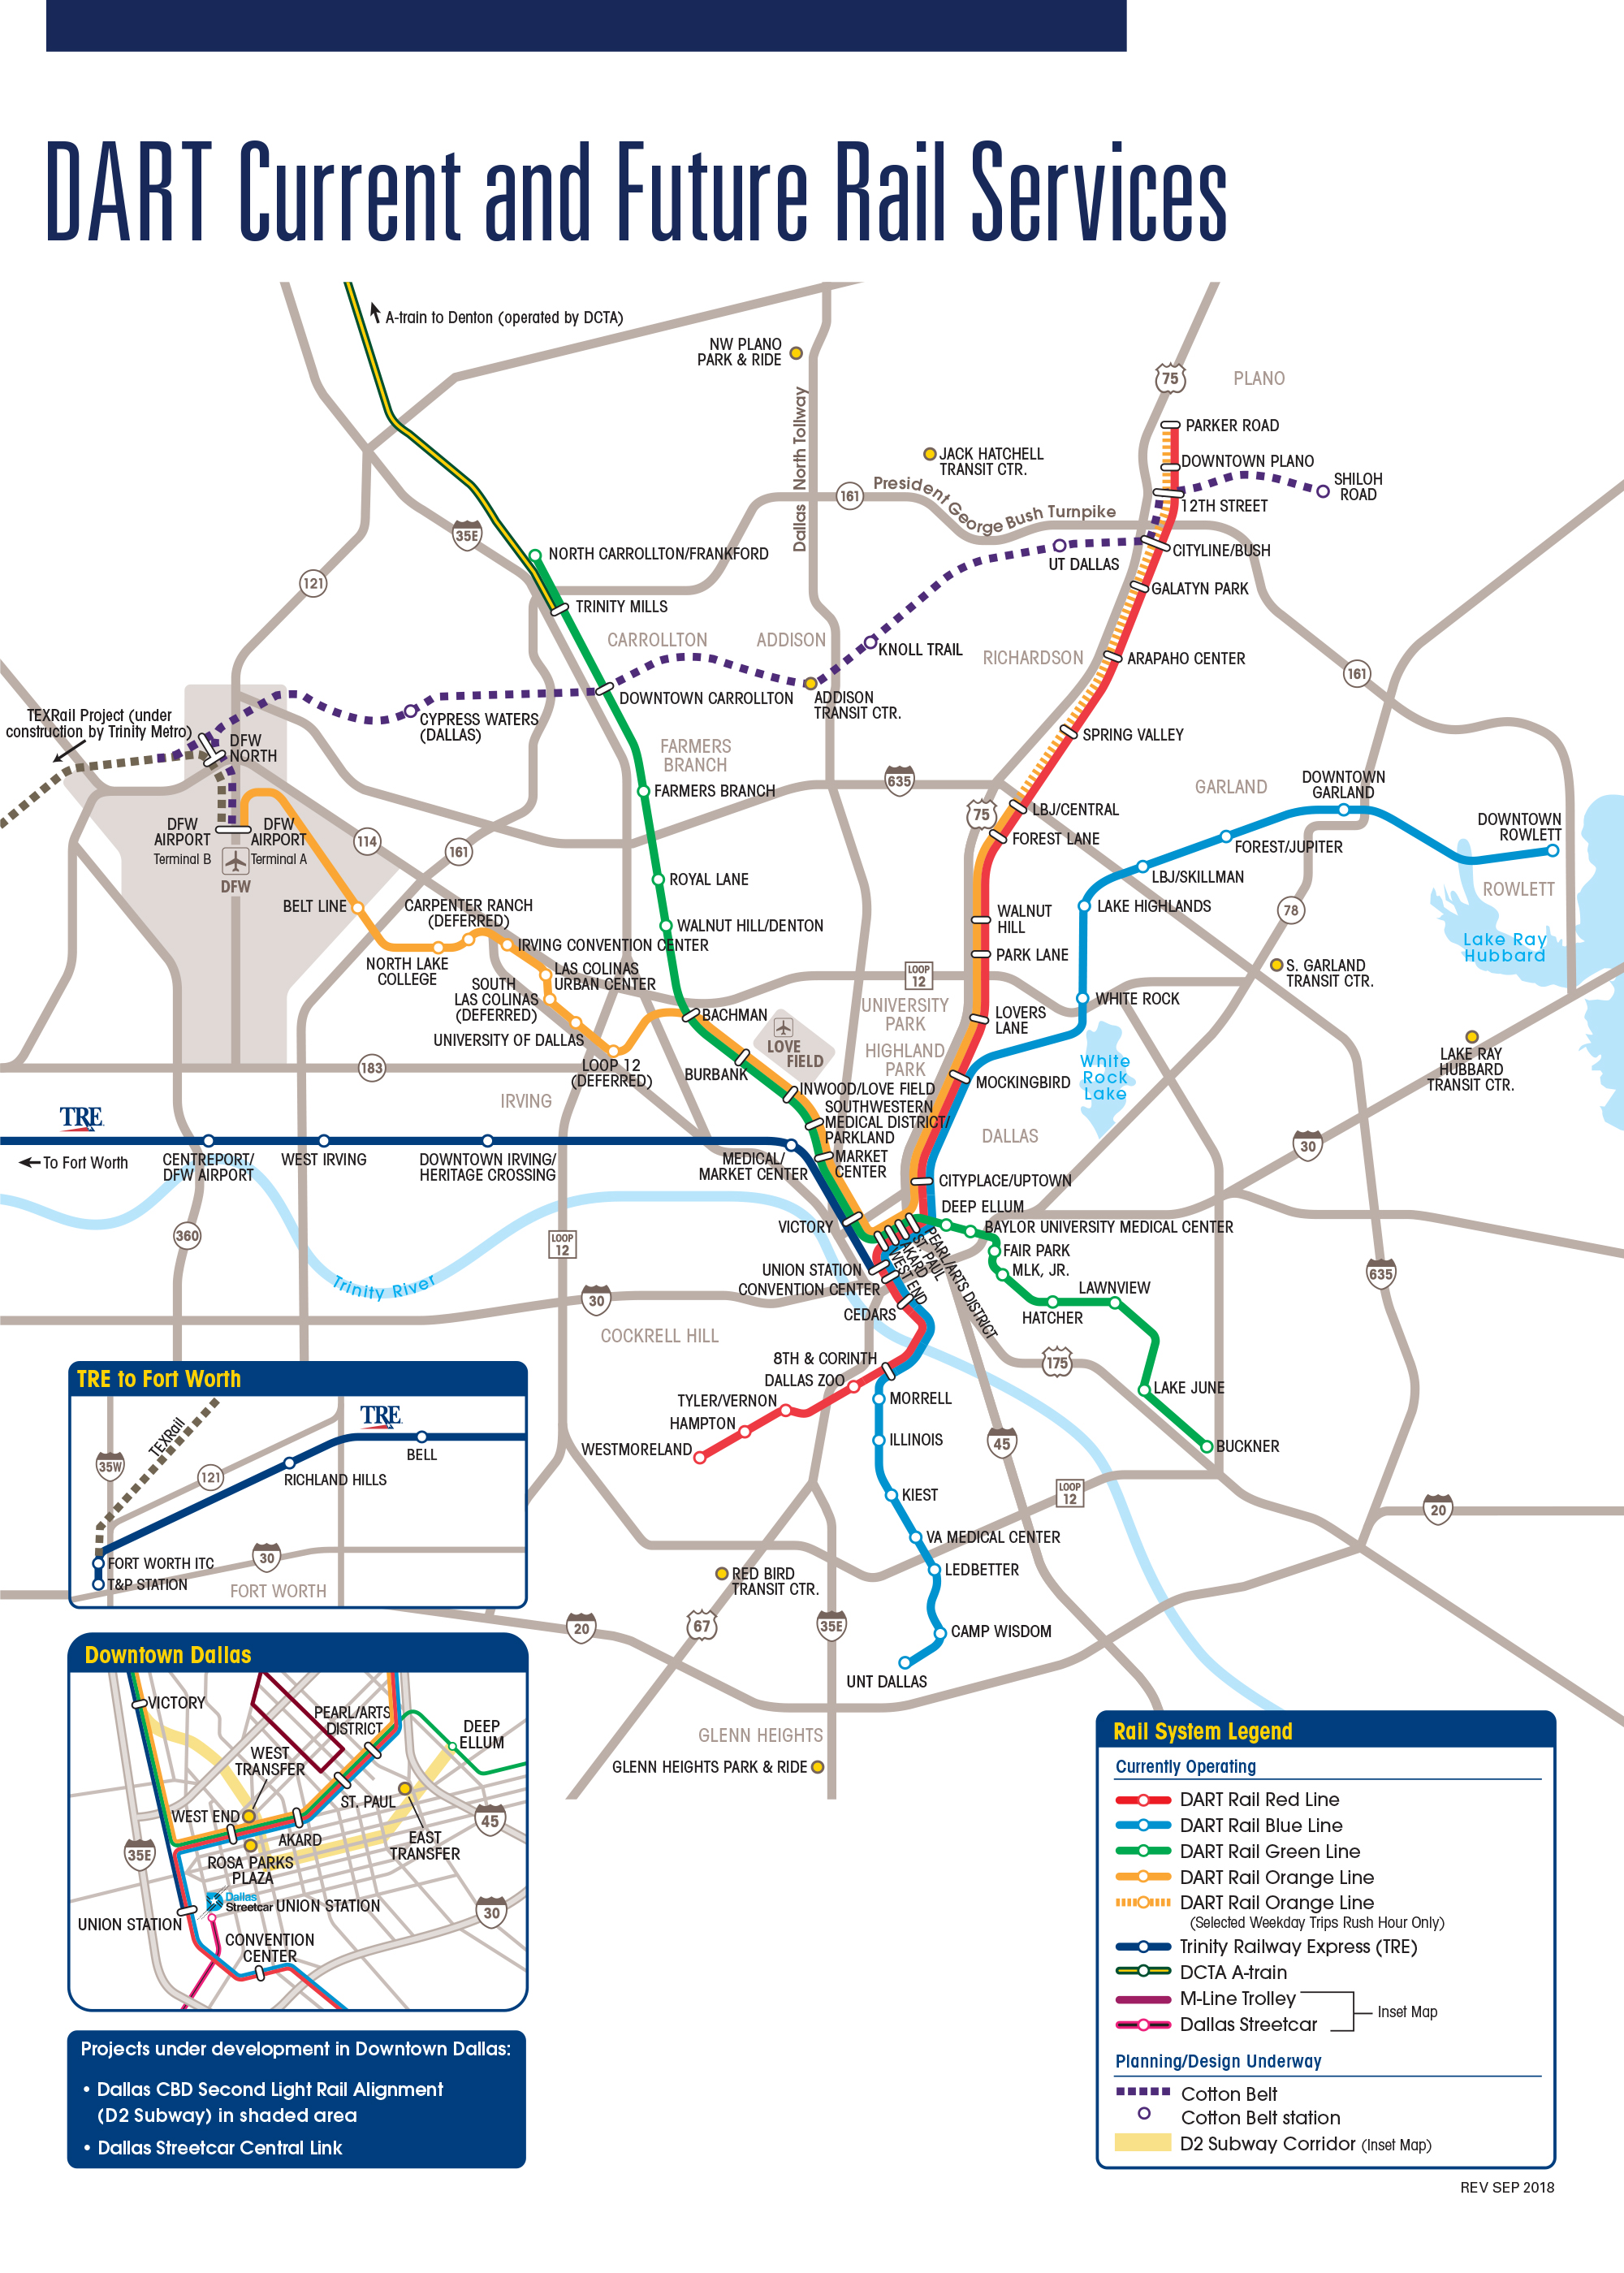 dart org dart current and future services map